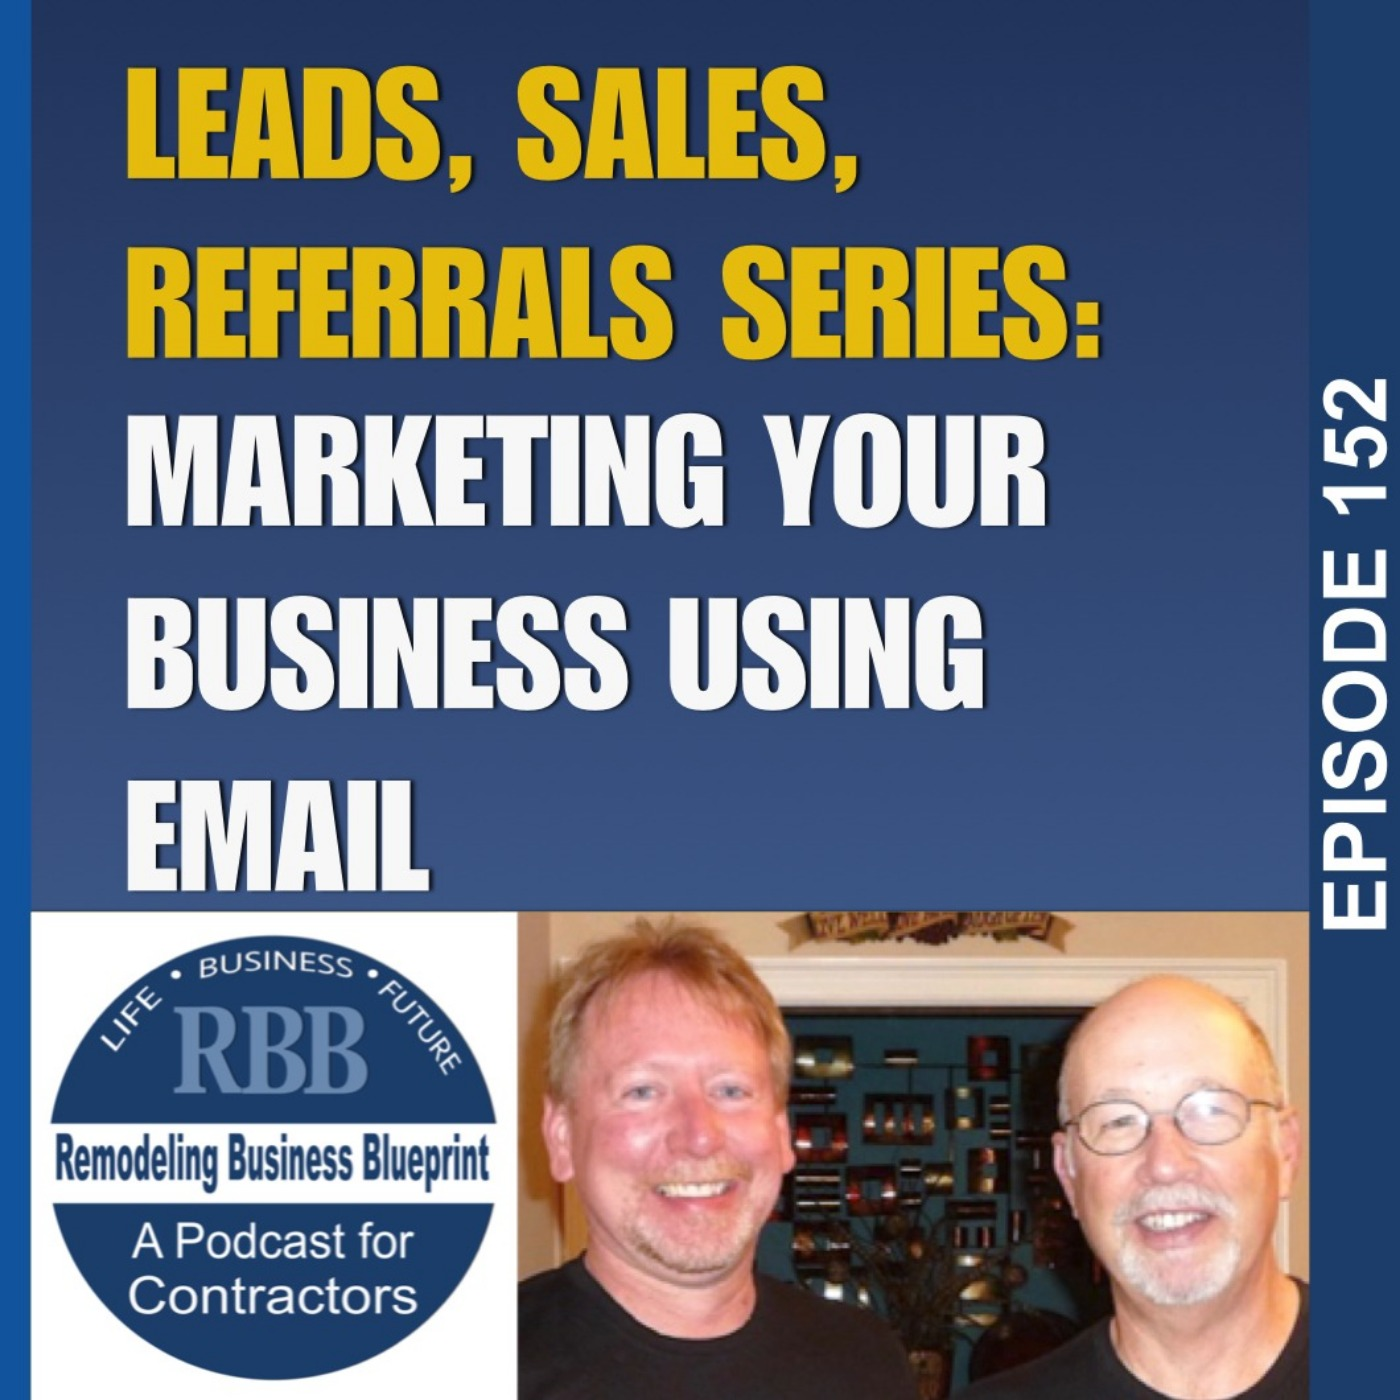 Marketing Your Business Using Email